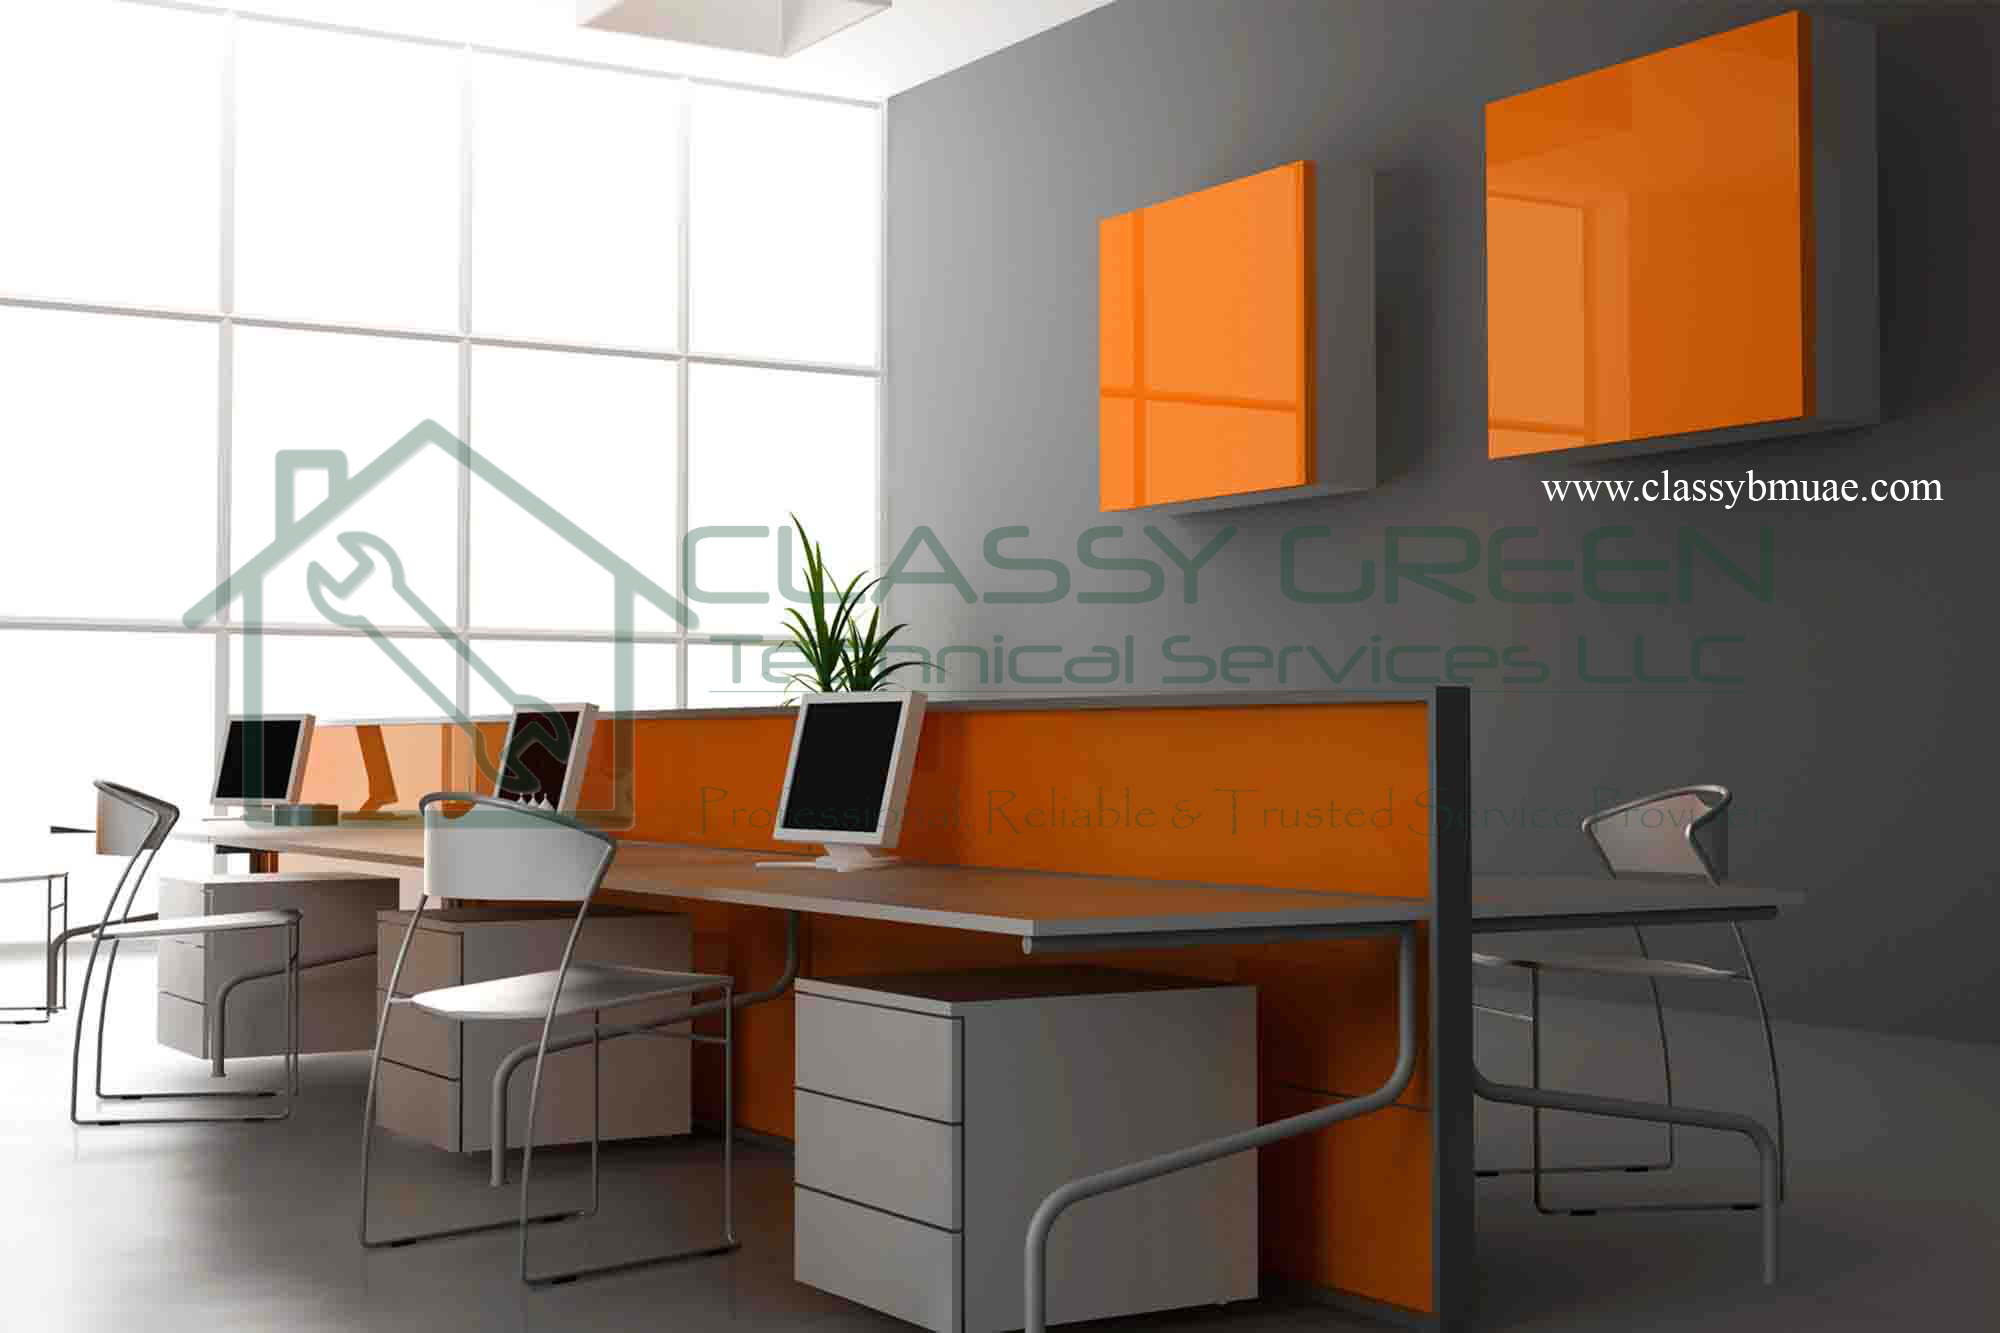 commercial painting services in dubai